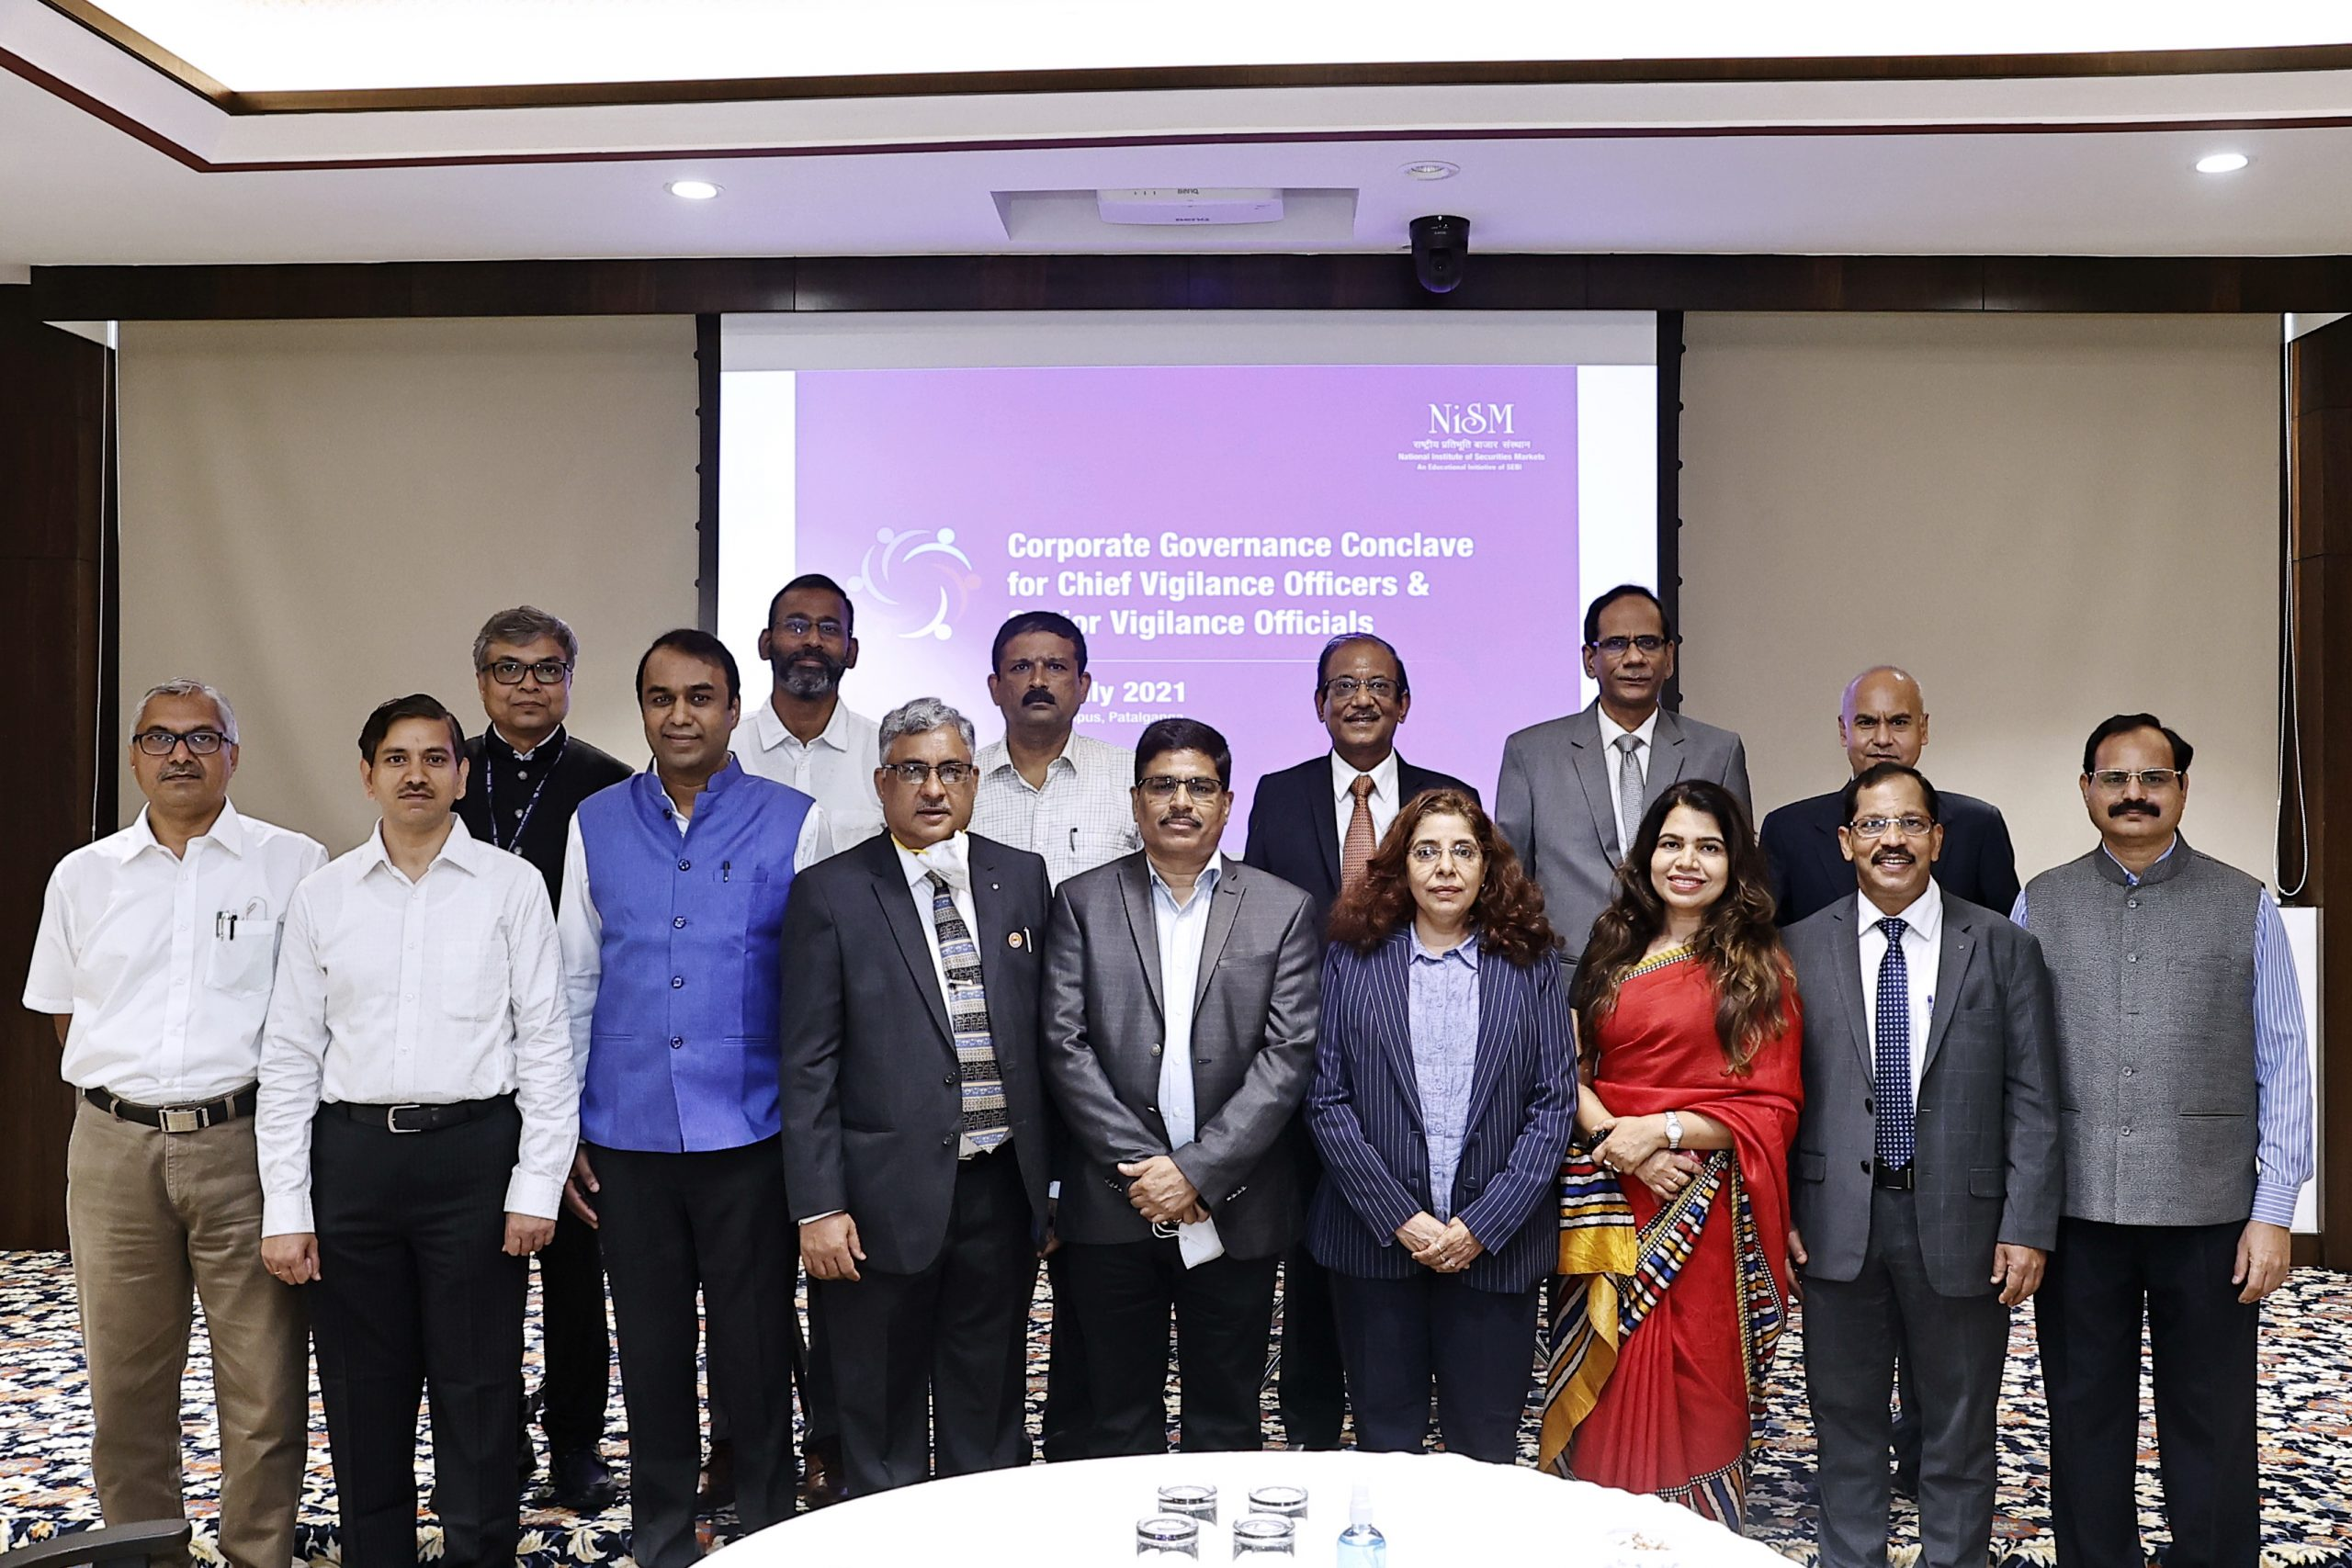 Corporate Governance Conclave for Chief Vigilance Officers and Senior Vigilance Officials | July 1-2, 2021